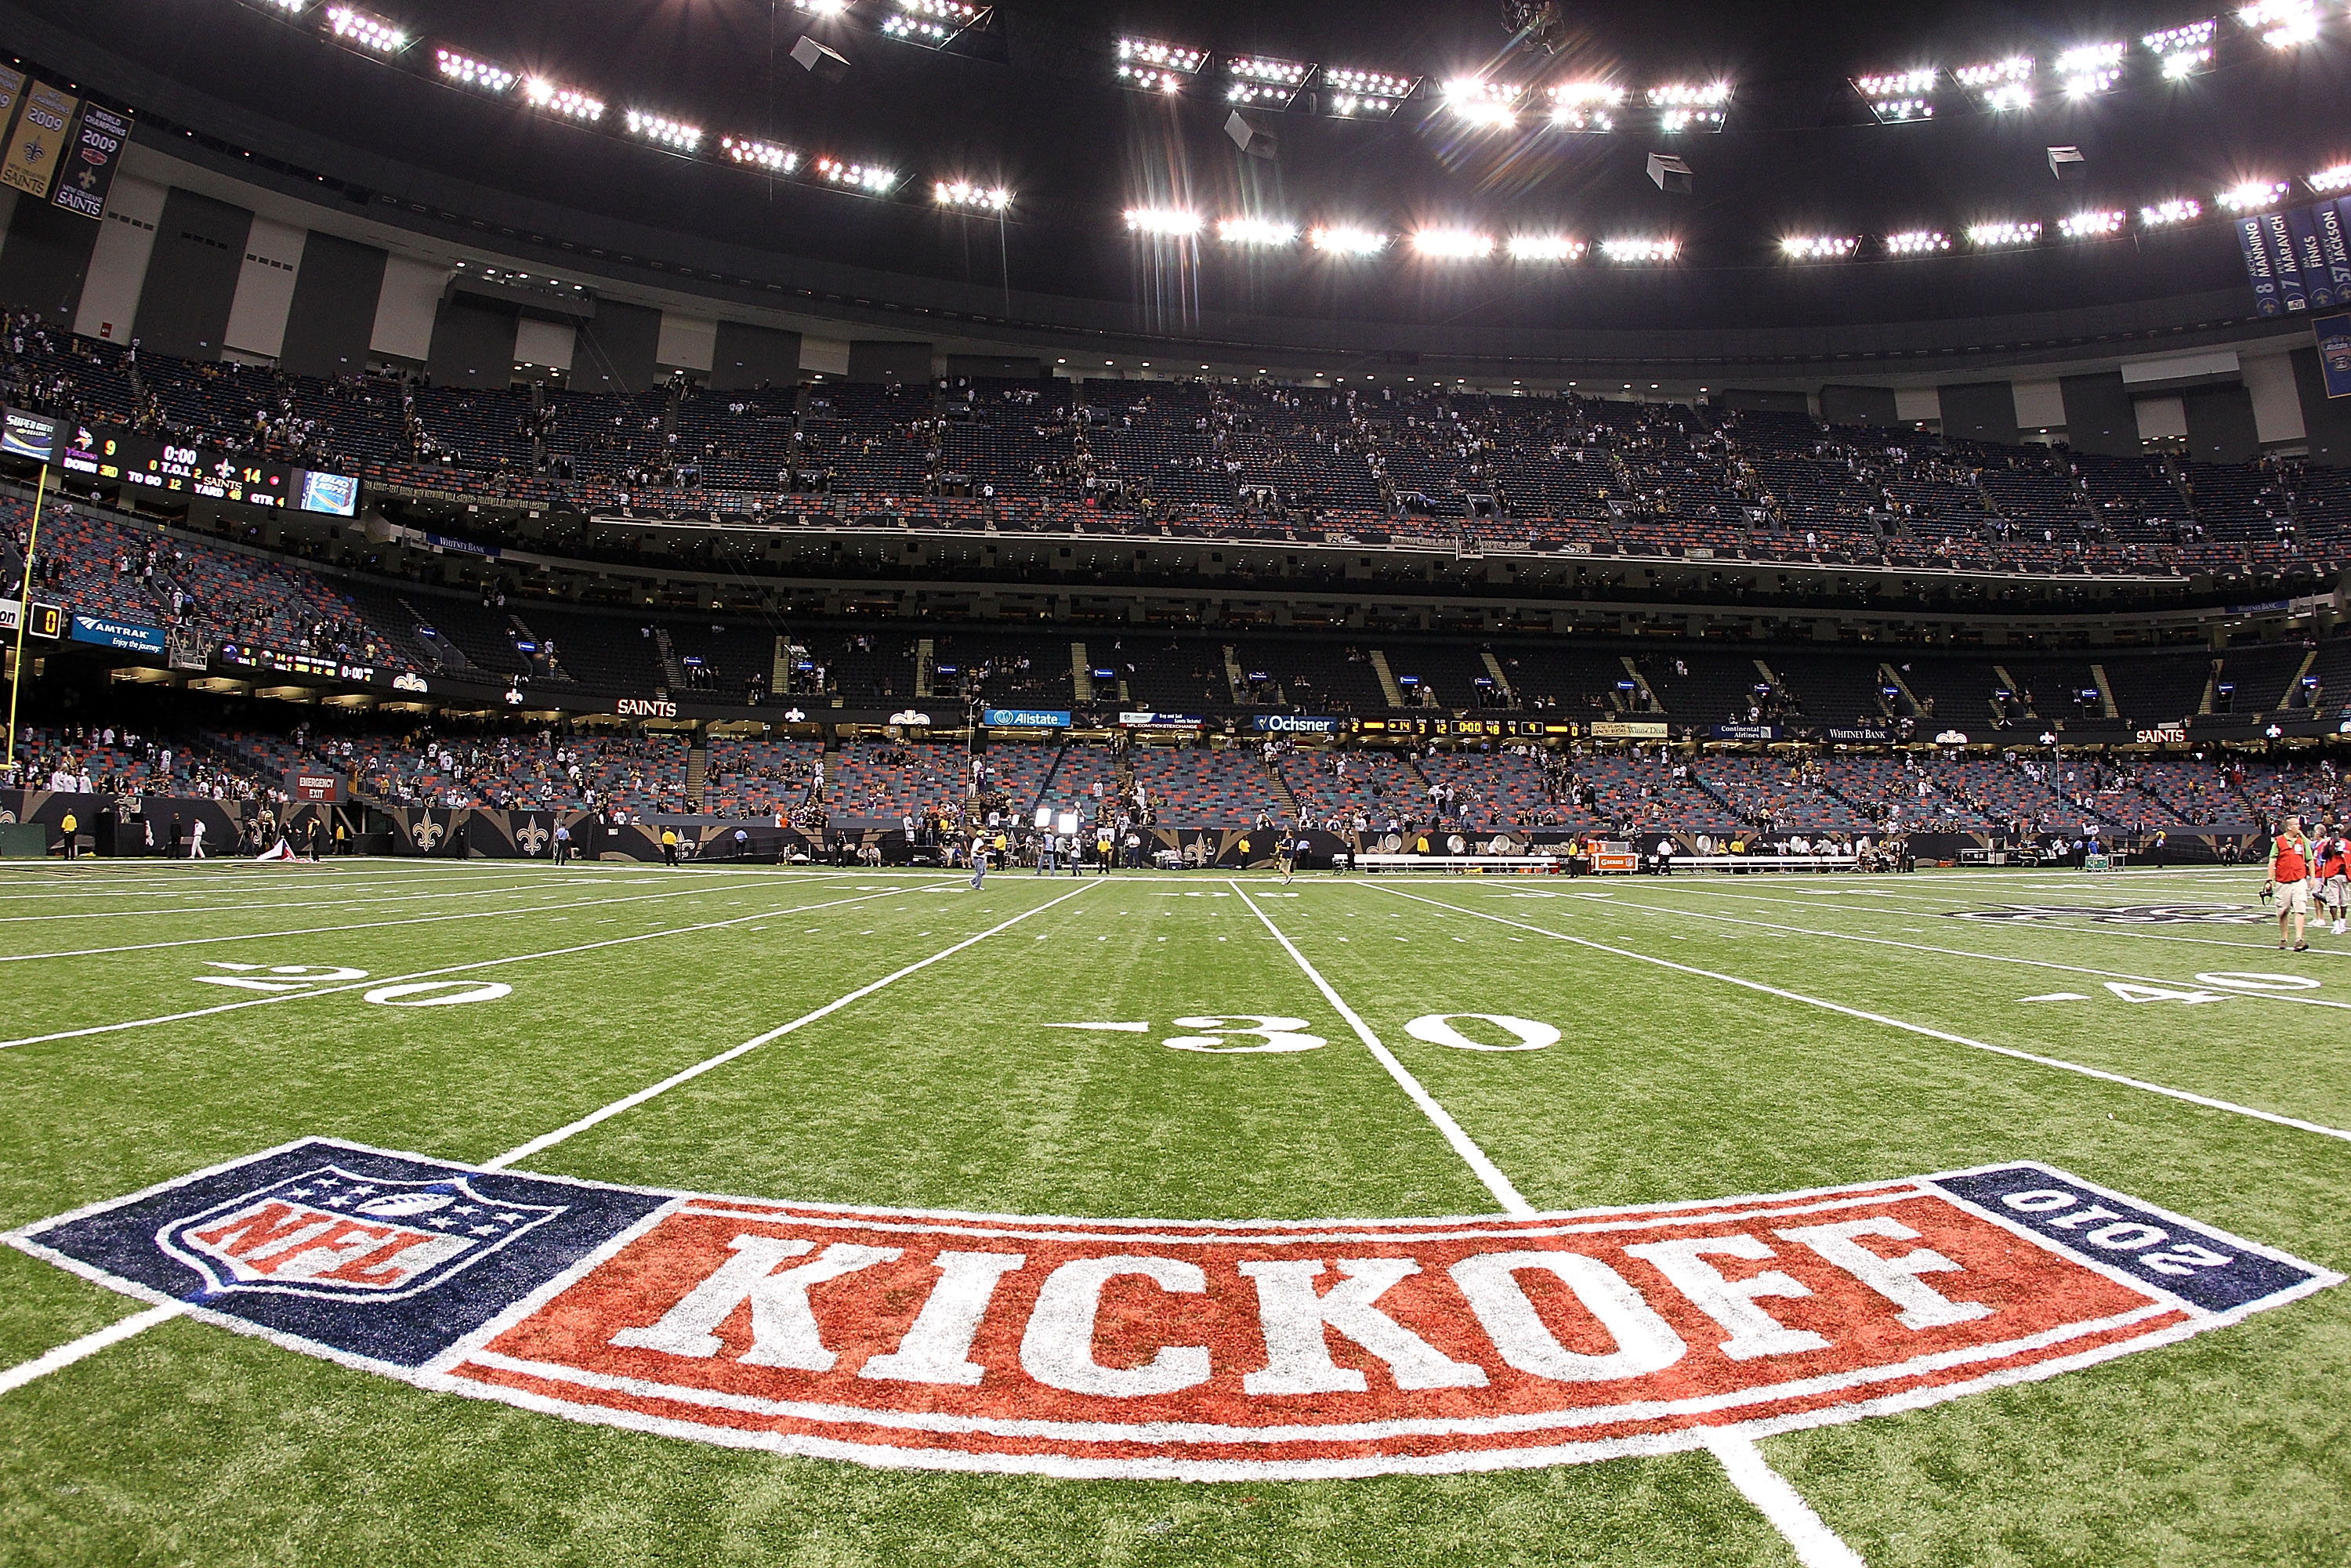 NEW ORLEANS - SEPTEMBER 09:  The NFL opening weekend Kickoff logo on the field at Louisiana Superdome on September 9, 2010 in New Orleans, Louisiana.  (Photo by Ronald Martinez/Getty Images)